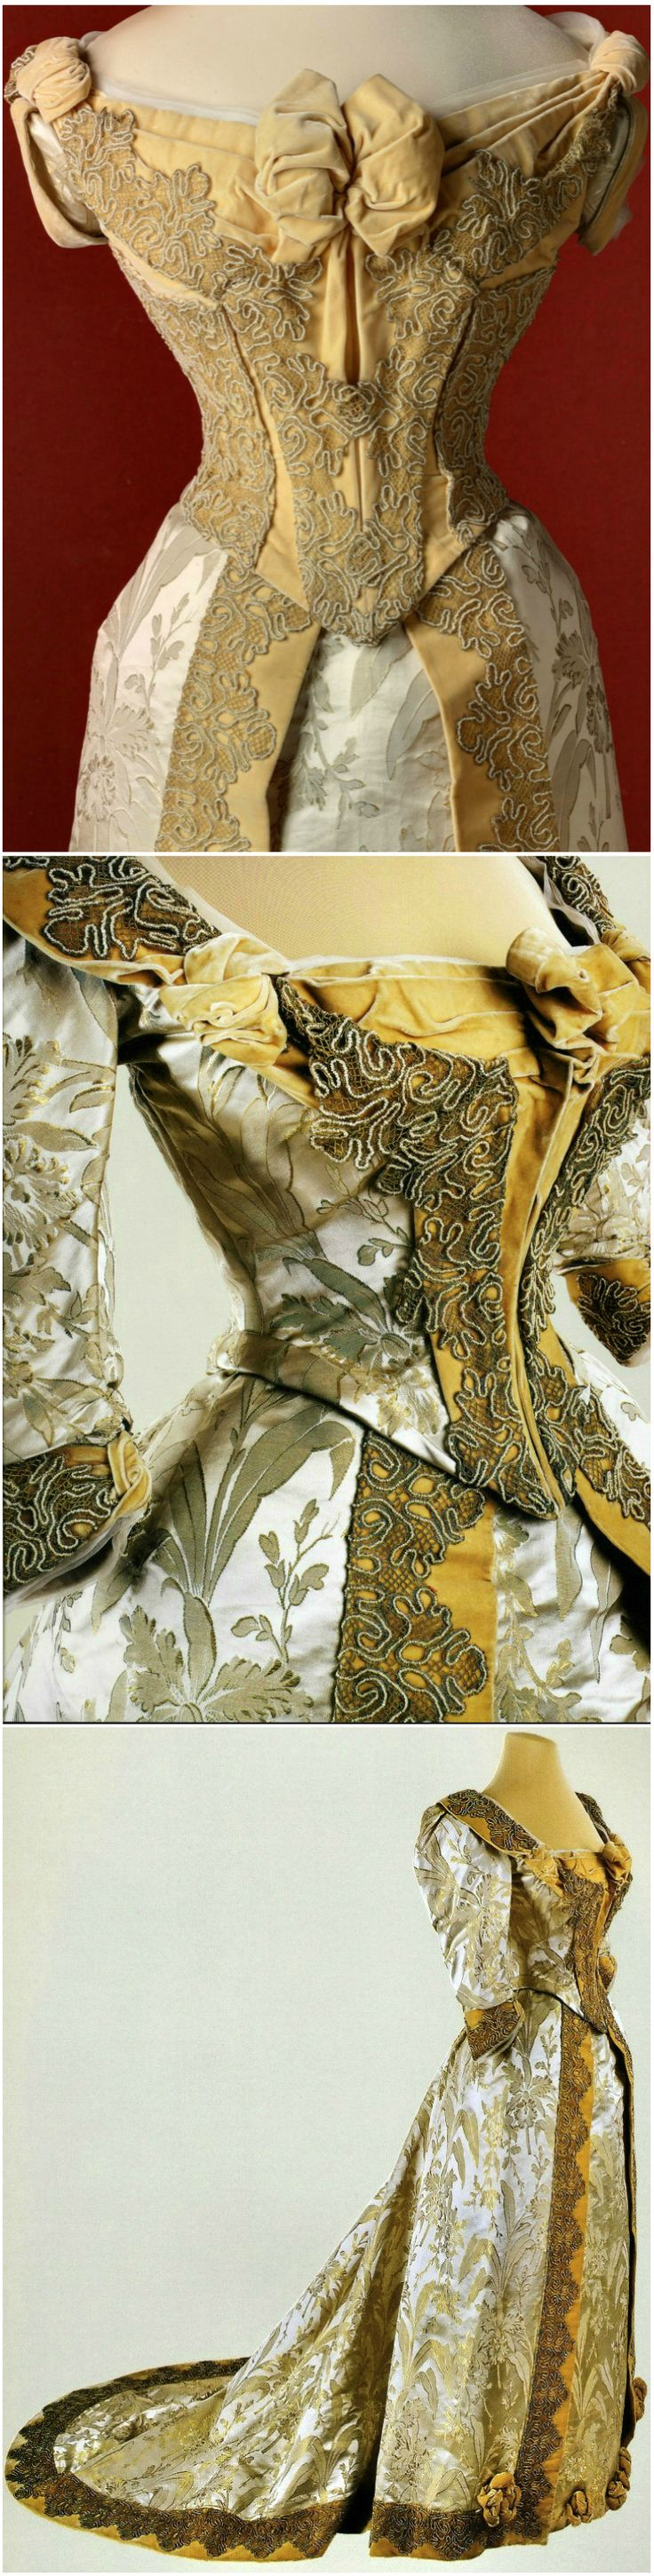 Cream brocade evening dress with orchid pattern; two bodices. Belonged to Empress Maria Fyodorovna. Designed by Morin-Blossier, Paris. 1892-1893. State Hermitage Museum, St. Petersburg.